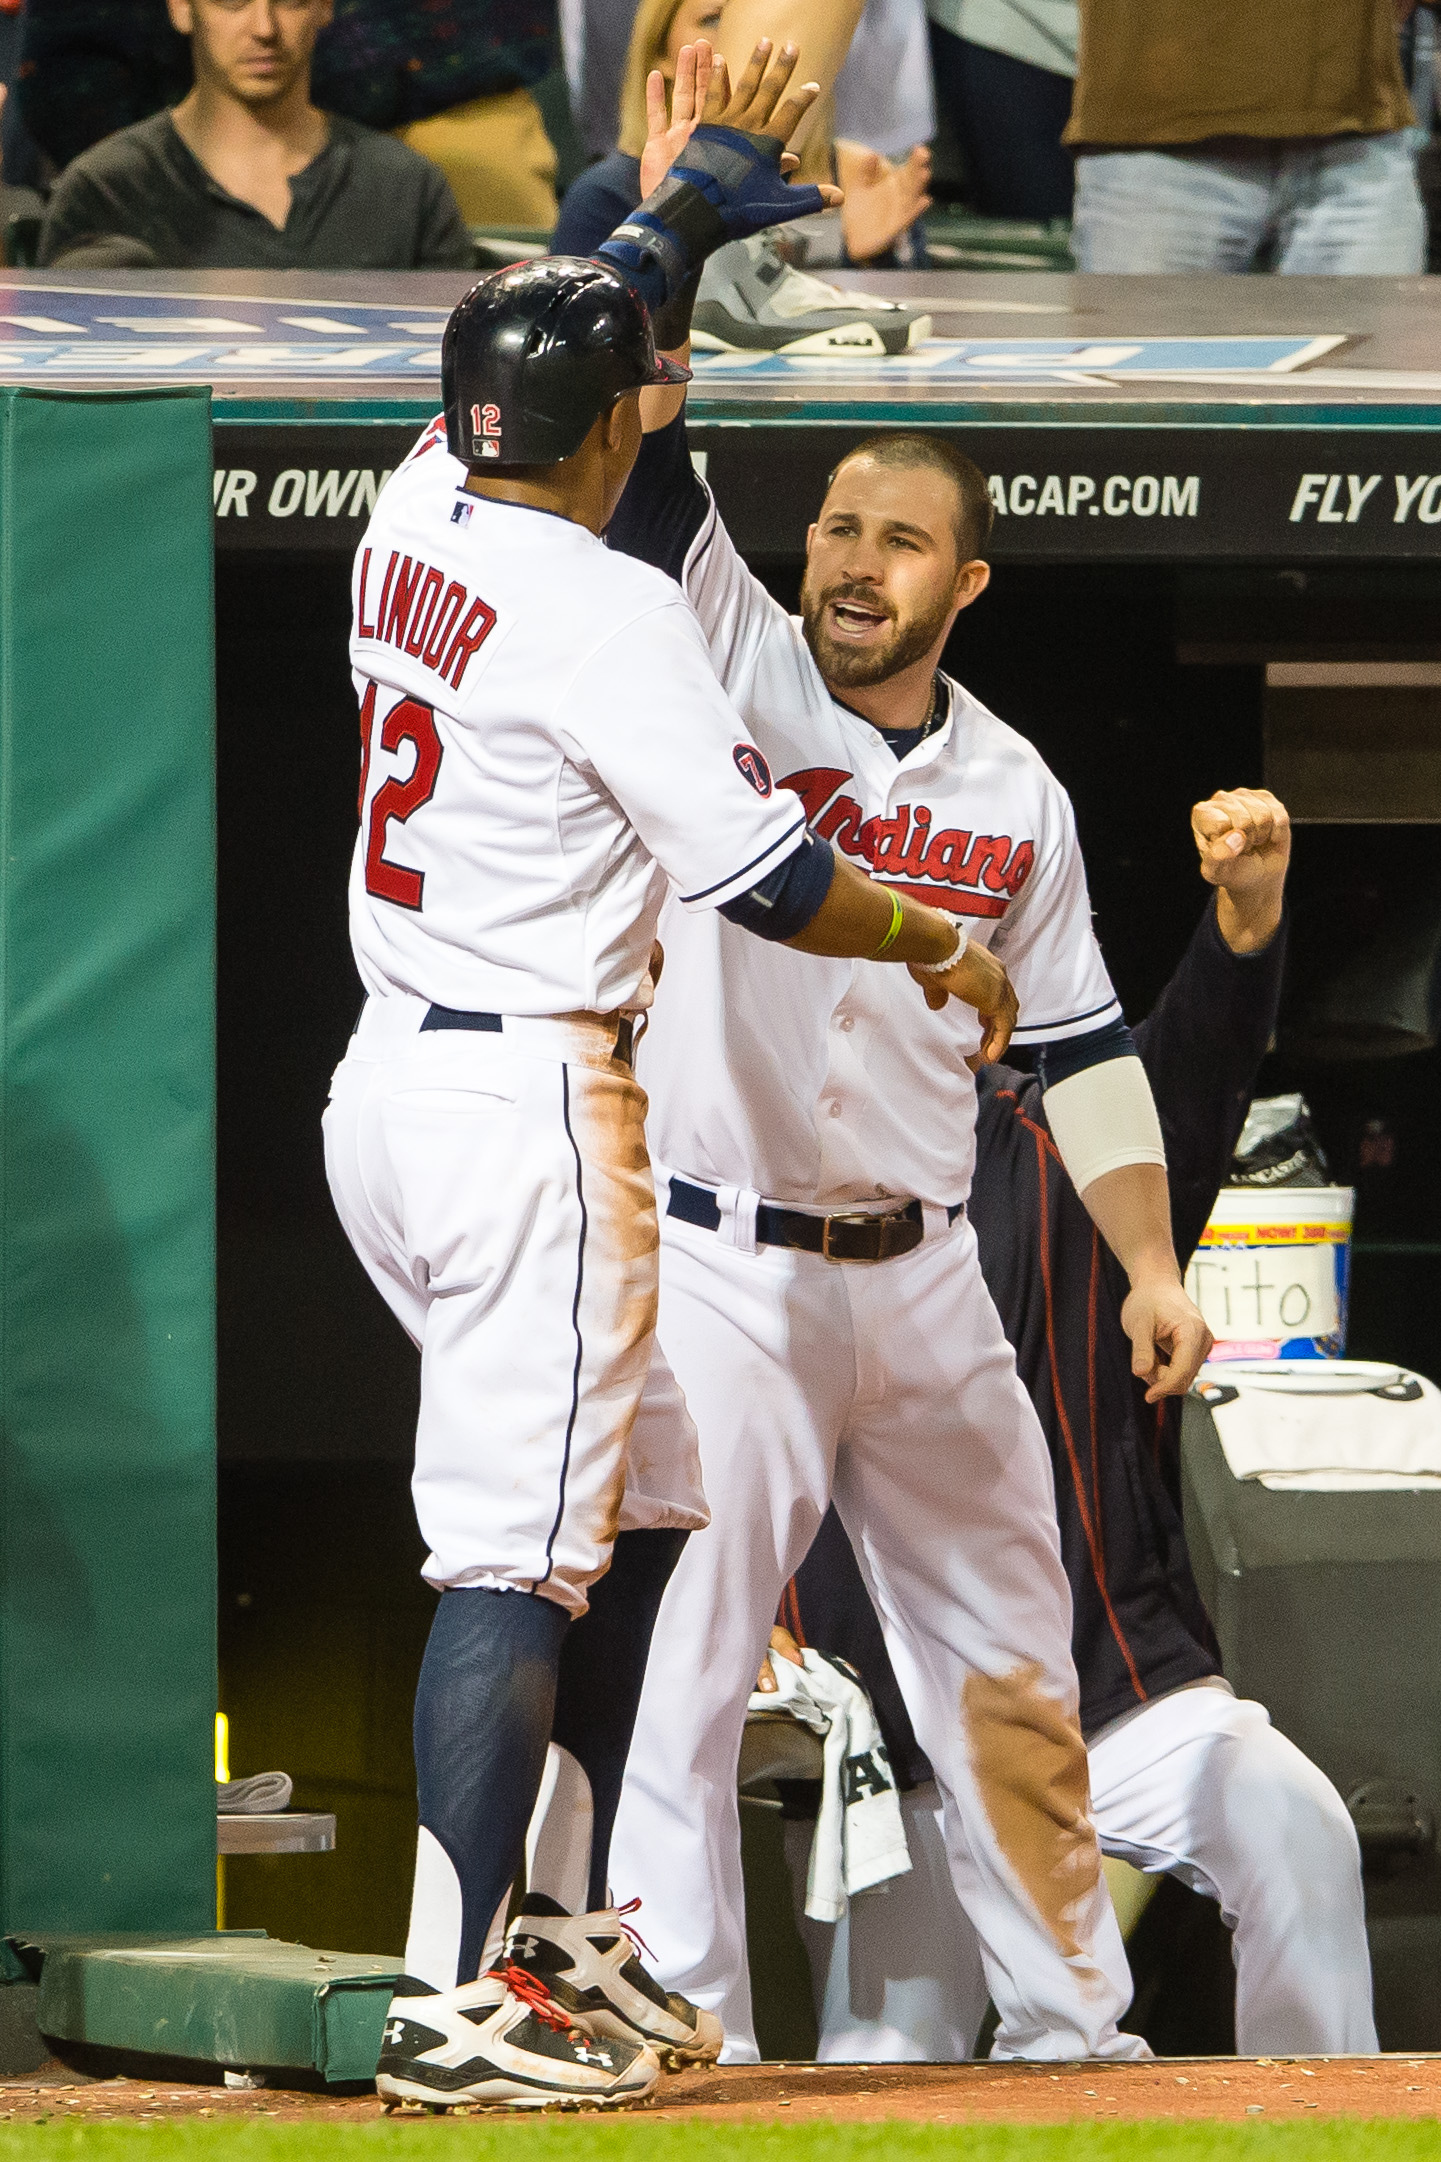 The dynamic Tribe middle infield